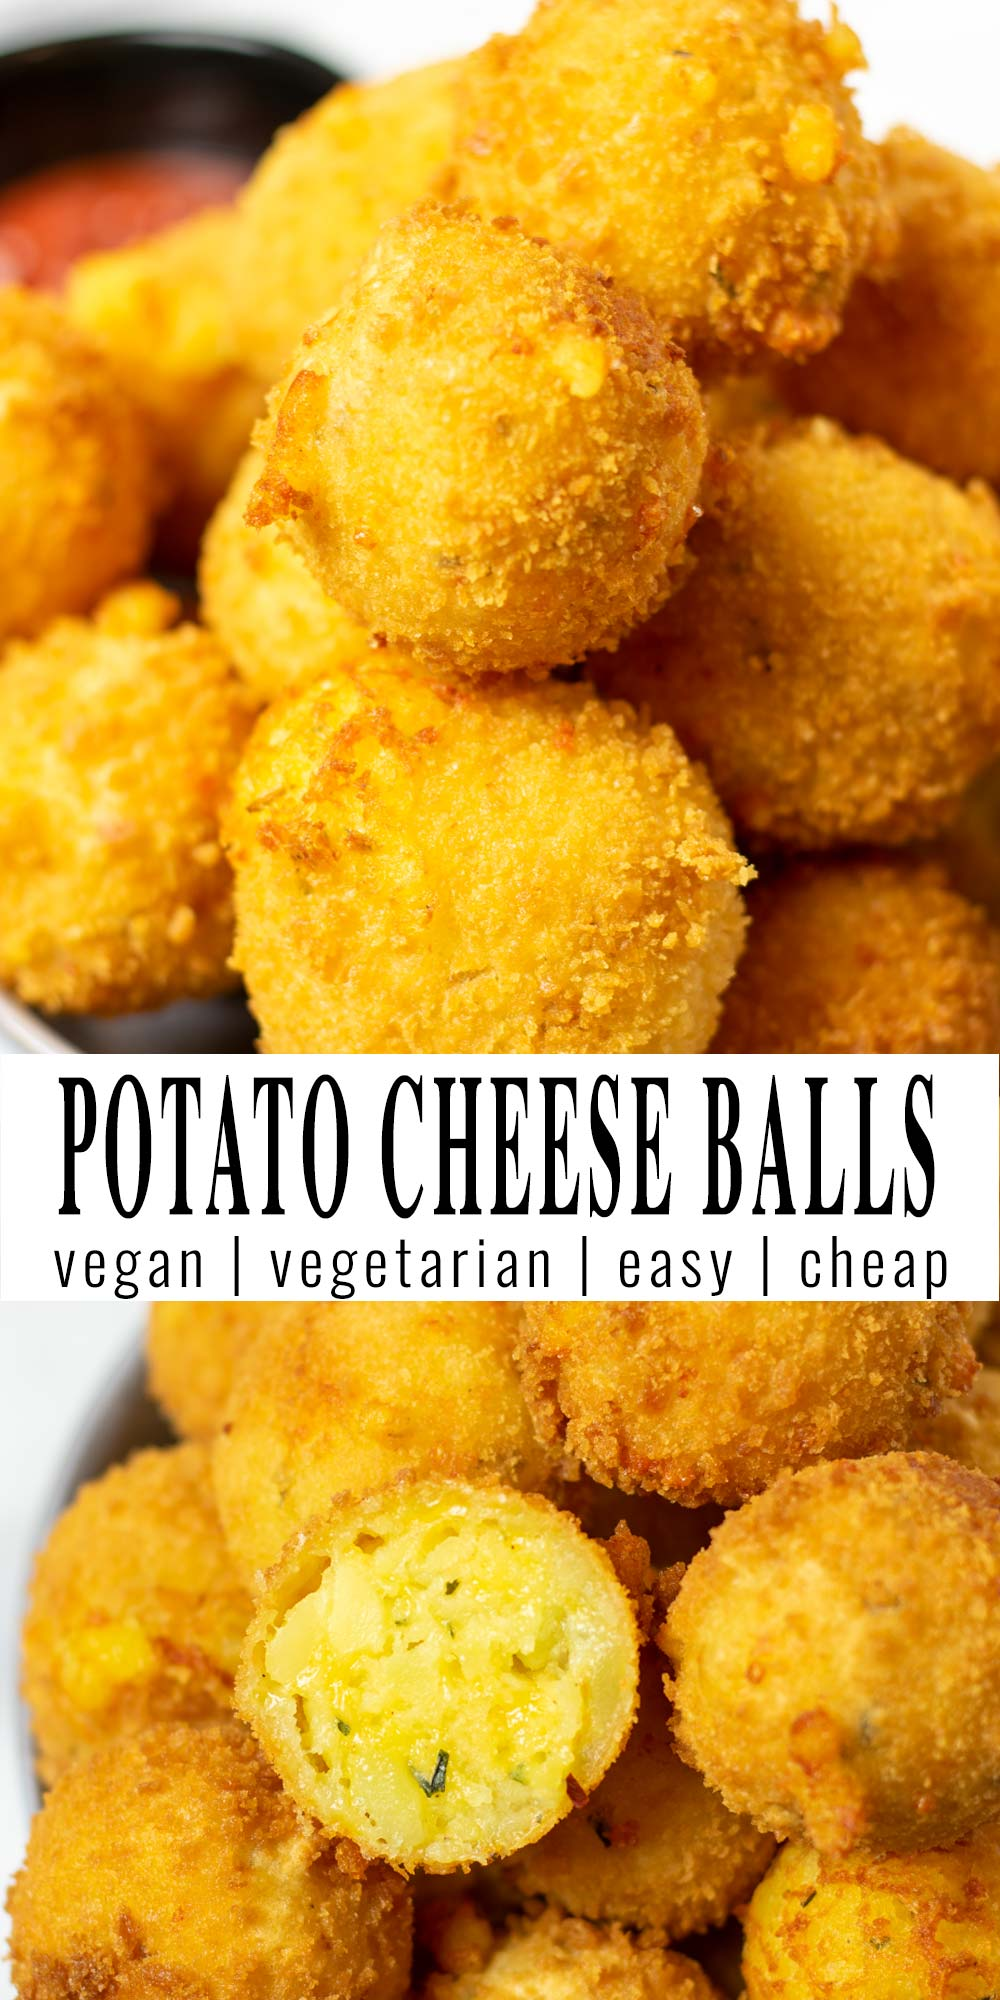 Collage of two pictures of the Potato Cheese Balls with recipe title text.